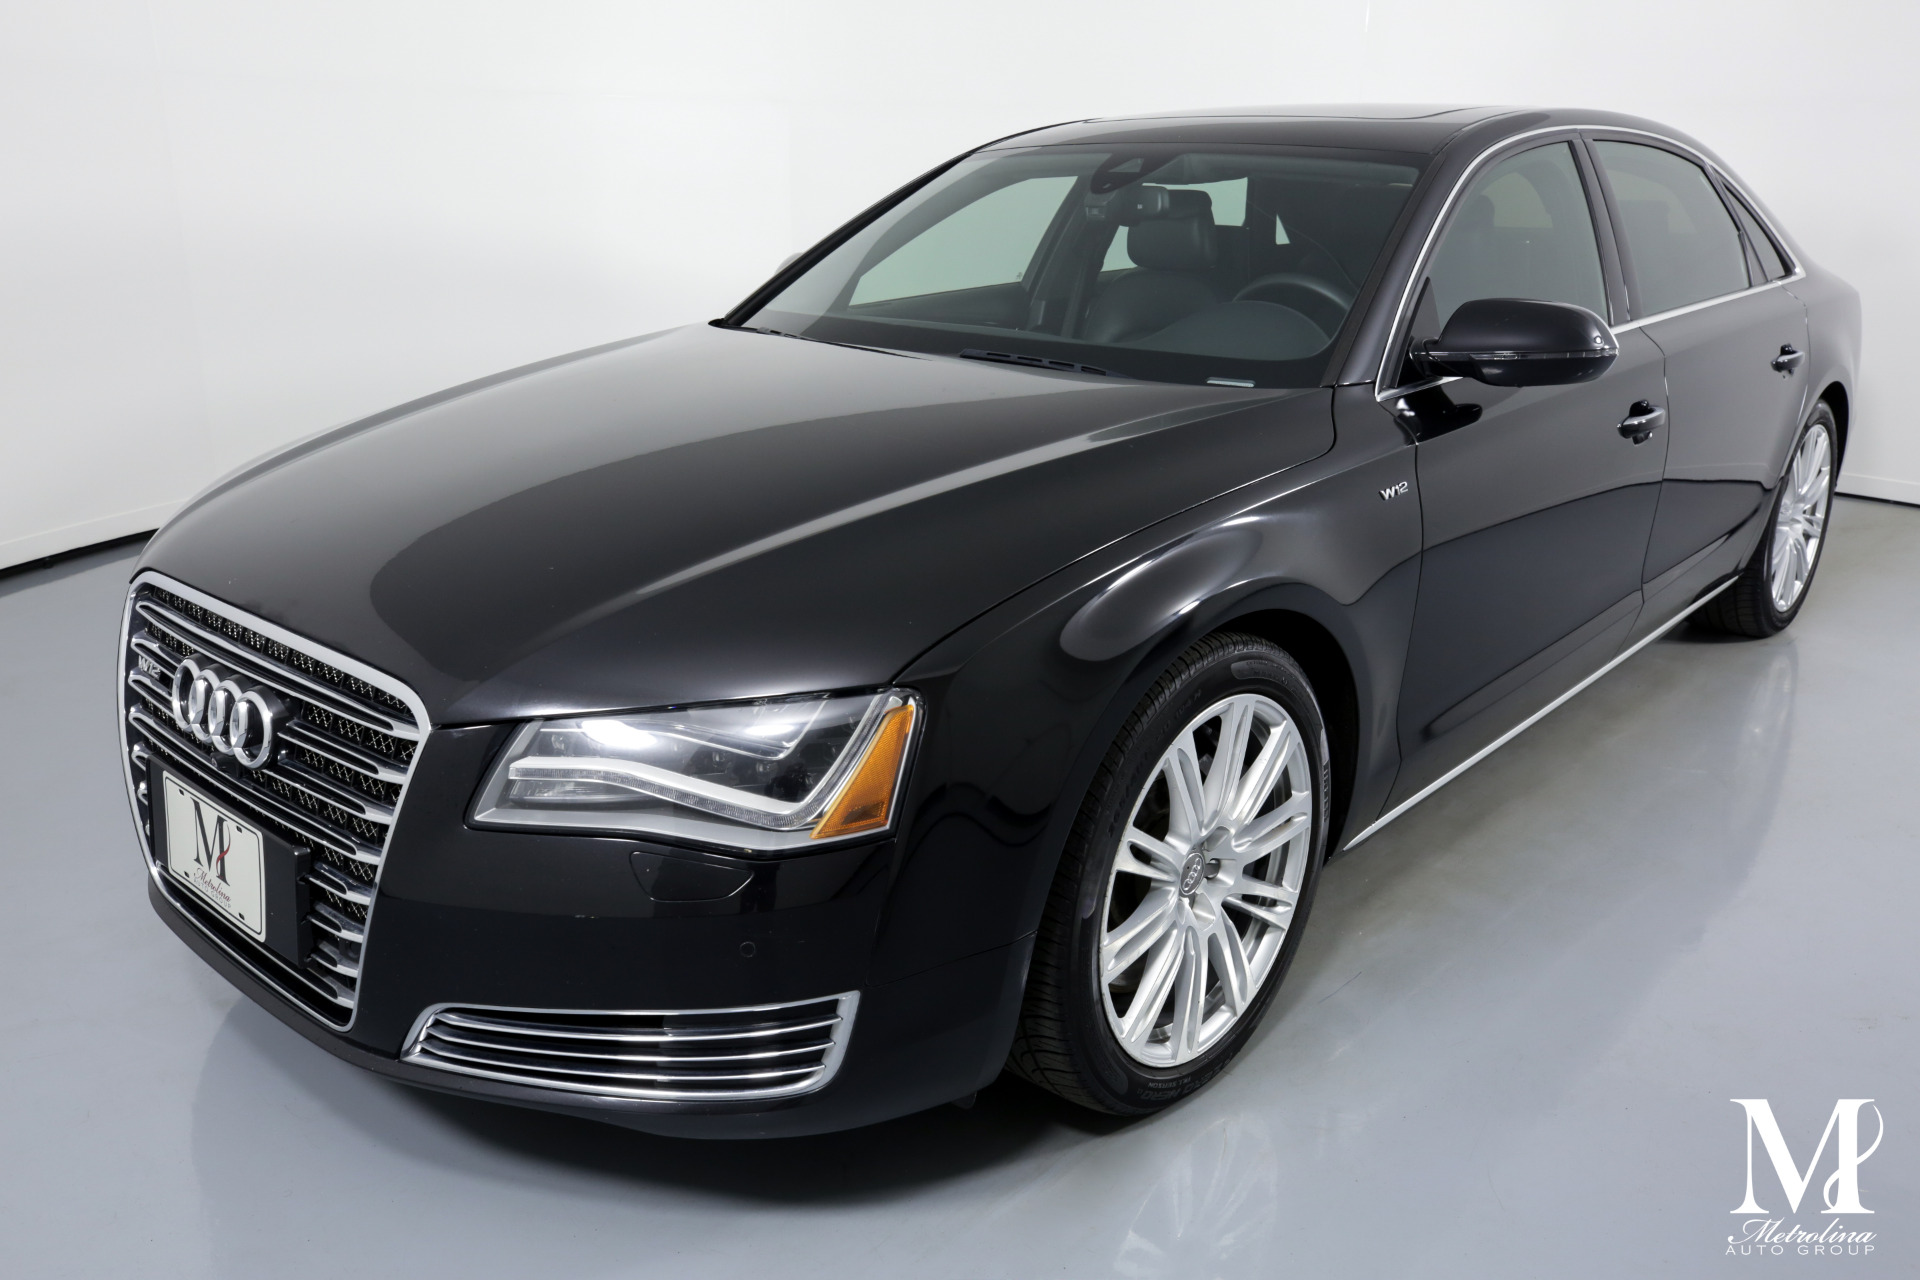 Used 2013 Audi A8 L W12 quattro for sale Sold at Metrolina Auto Group in Charlotte NC 28217 - 4